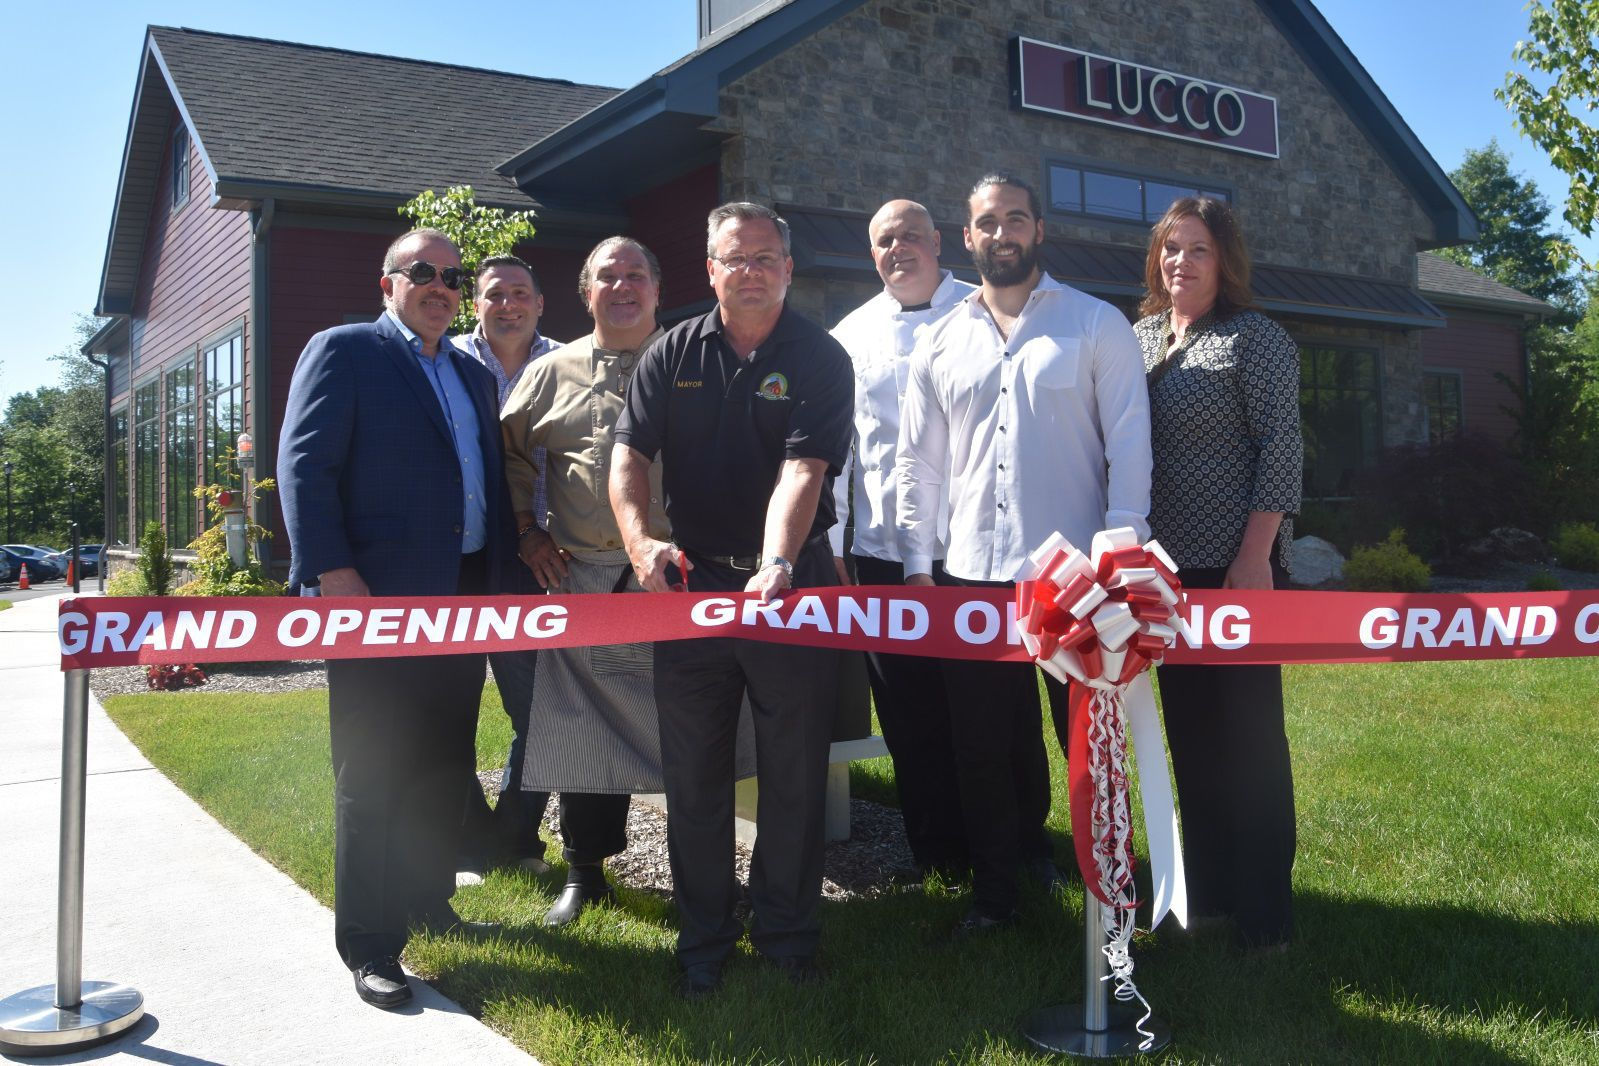 Cucina Restaurant Nj Lucco Opening Florham Park Eagle News Newjerseyhills